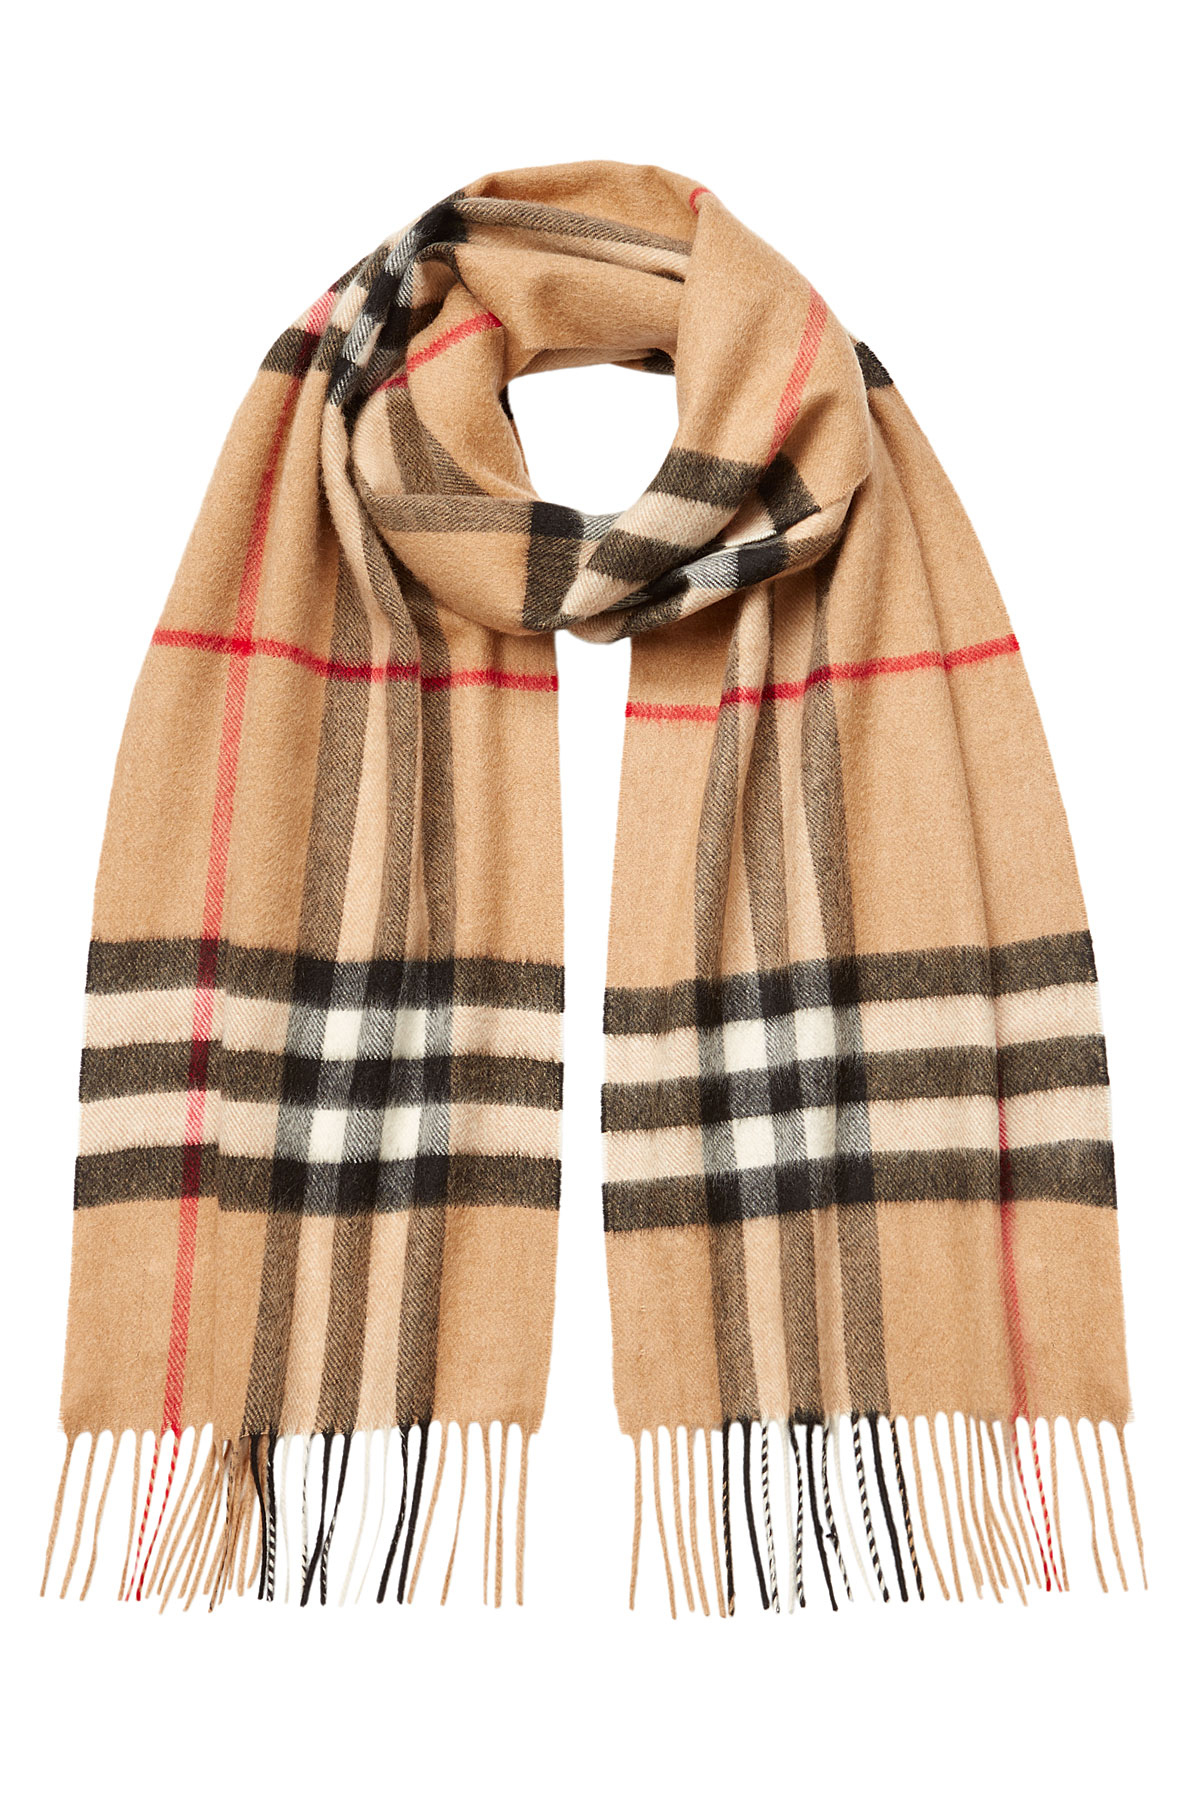 Burberry Checked Cashmere Scarf Beige In Brown For Men Lyst